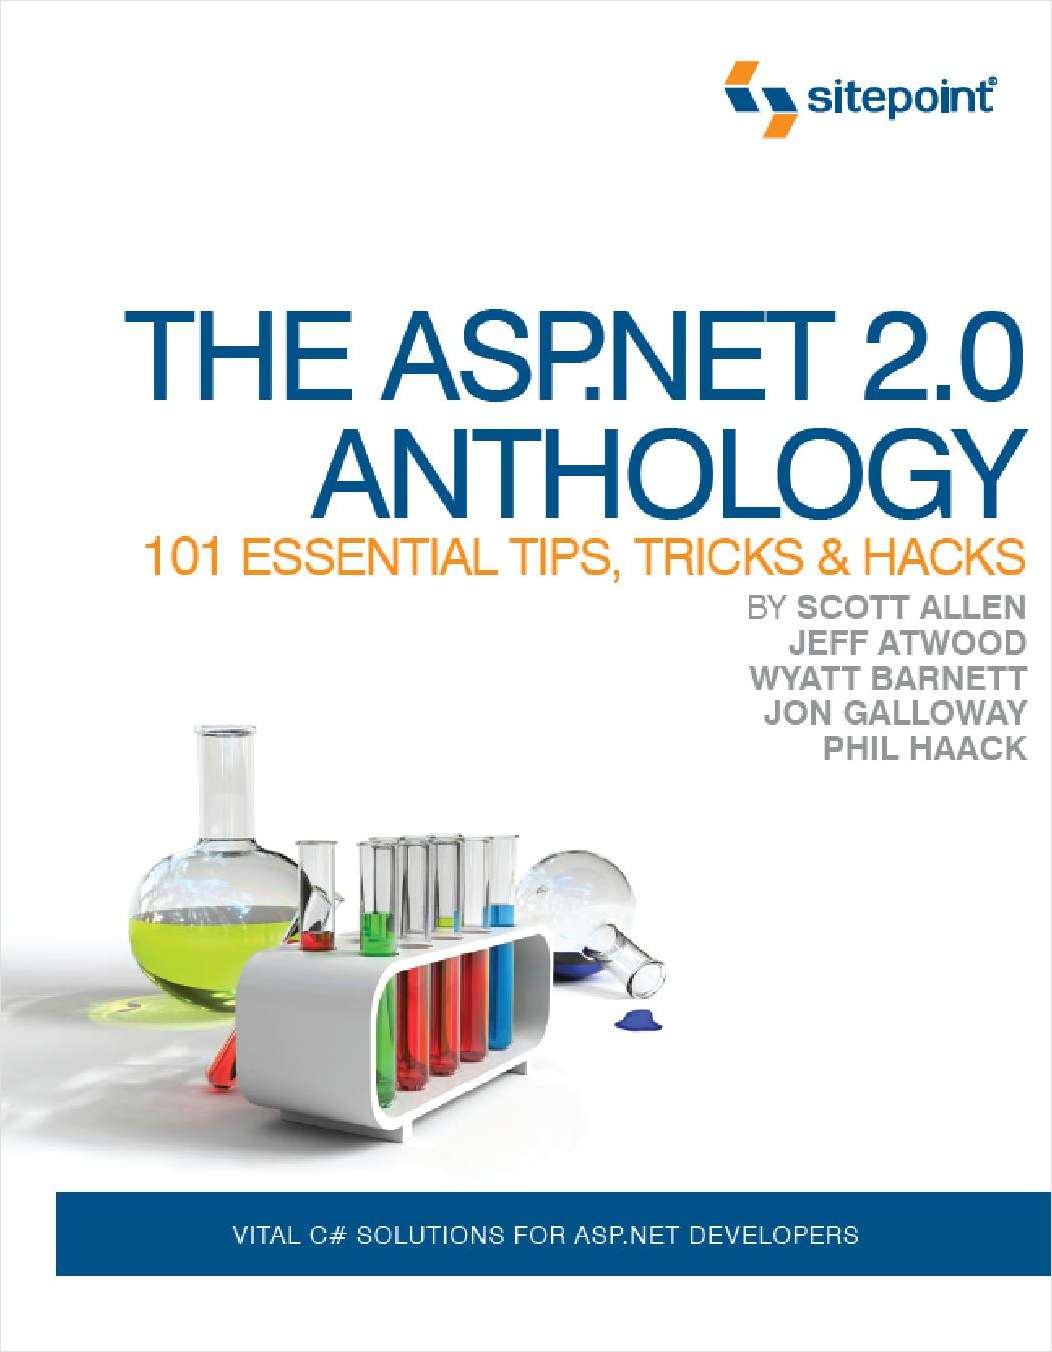 The ASP.NET 2.0 Anthology: 101 Essential Tips, Tricks & Hacks - Free 156 Page Preview